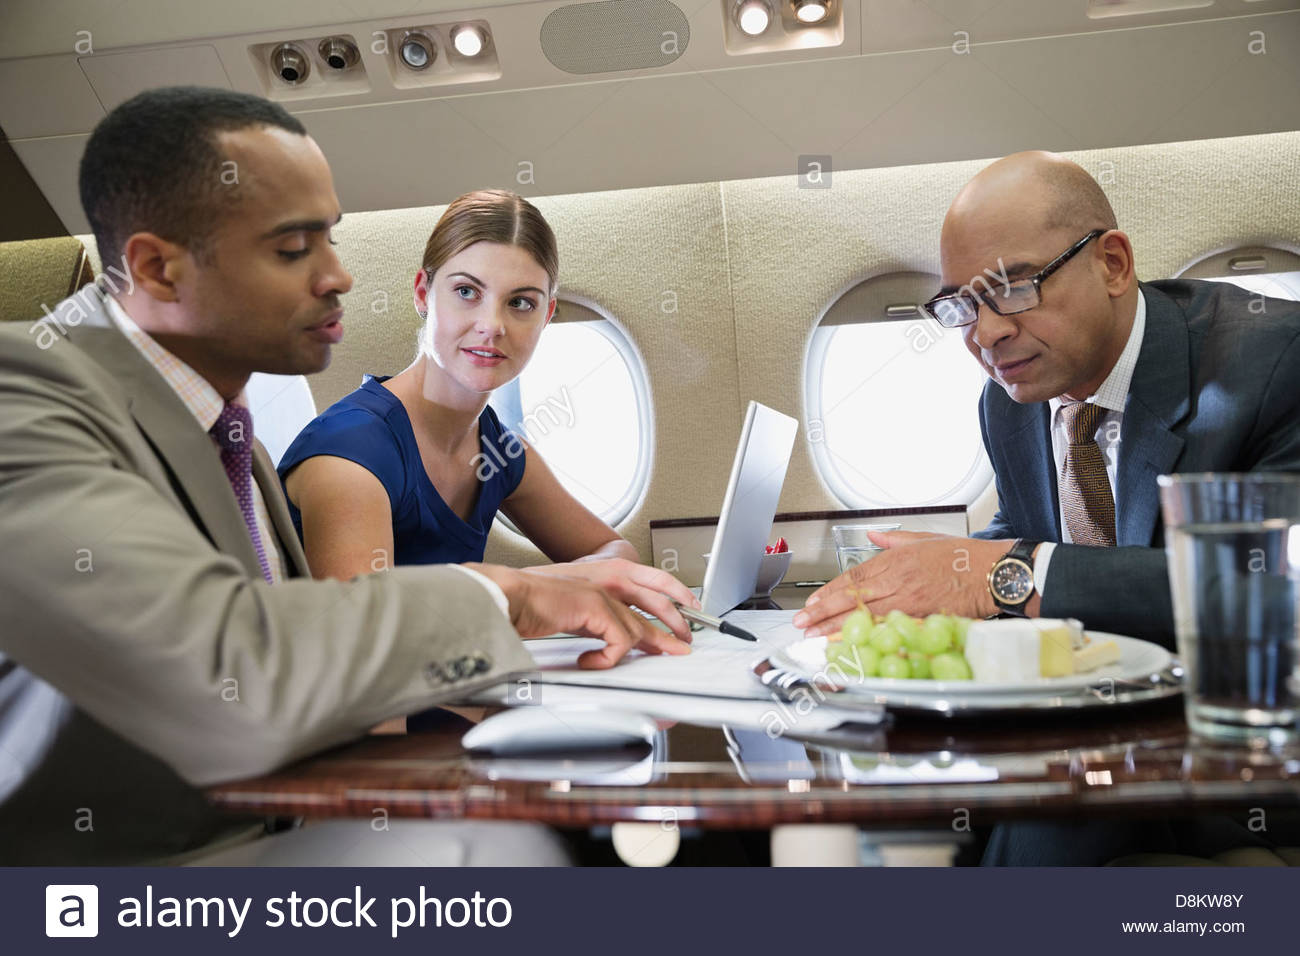 Business people working in private jet - Stock Image